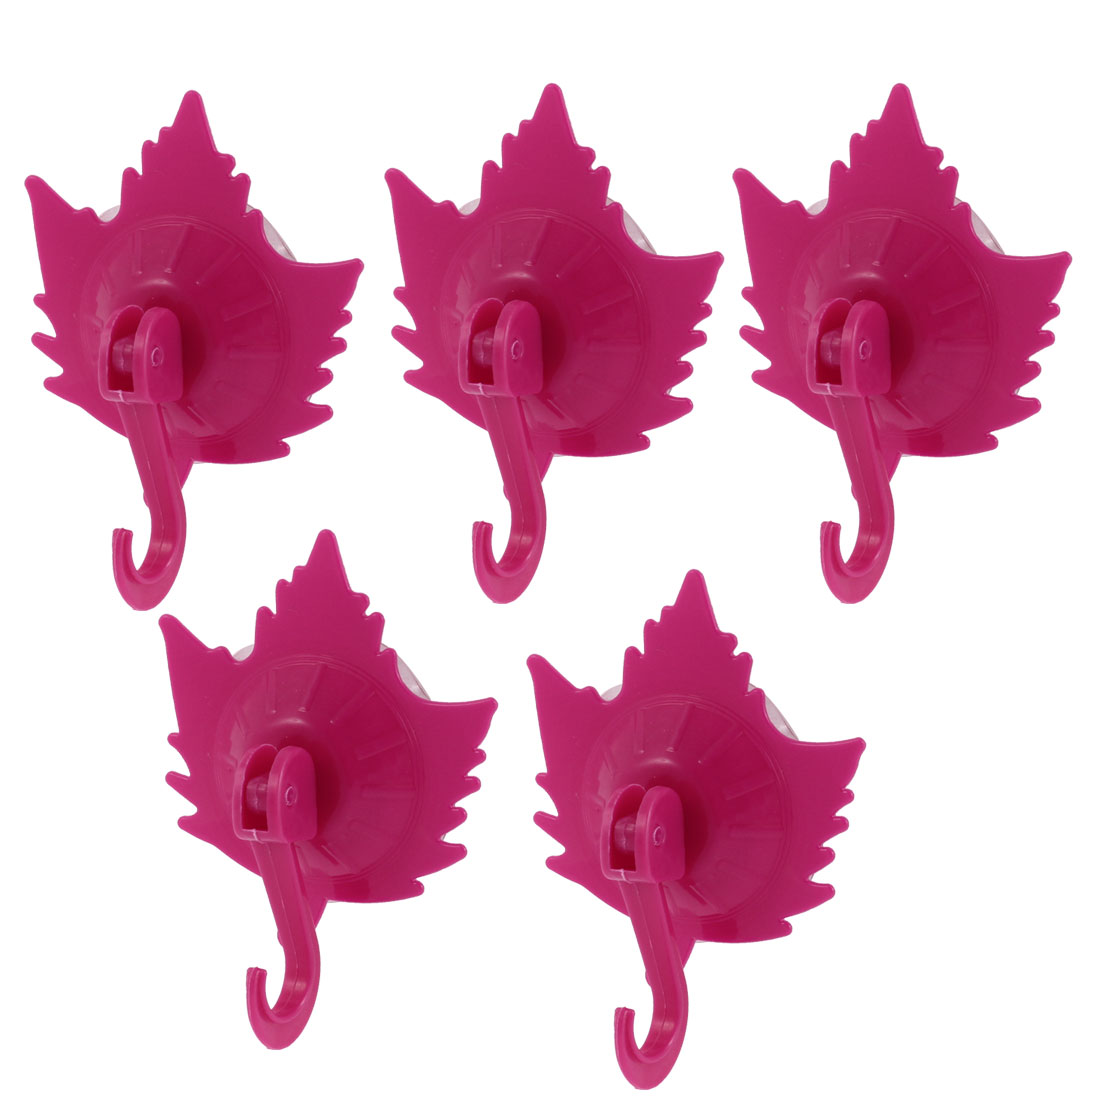 Home Clothes Coat Maple Leaf Design Suction Cup Hooks Wall Hangers Fuchsia 5pcs